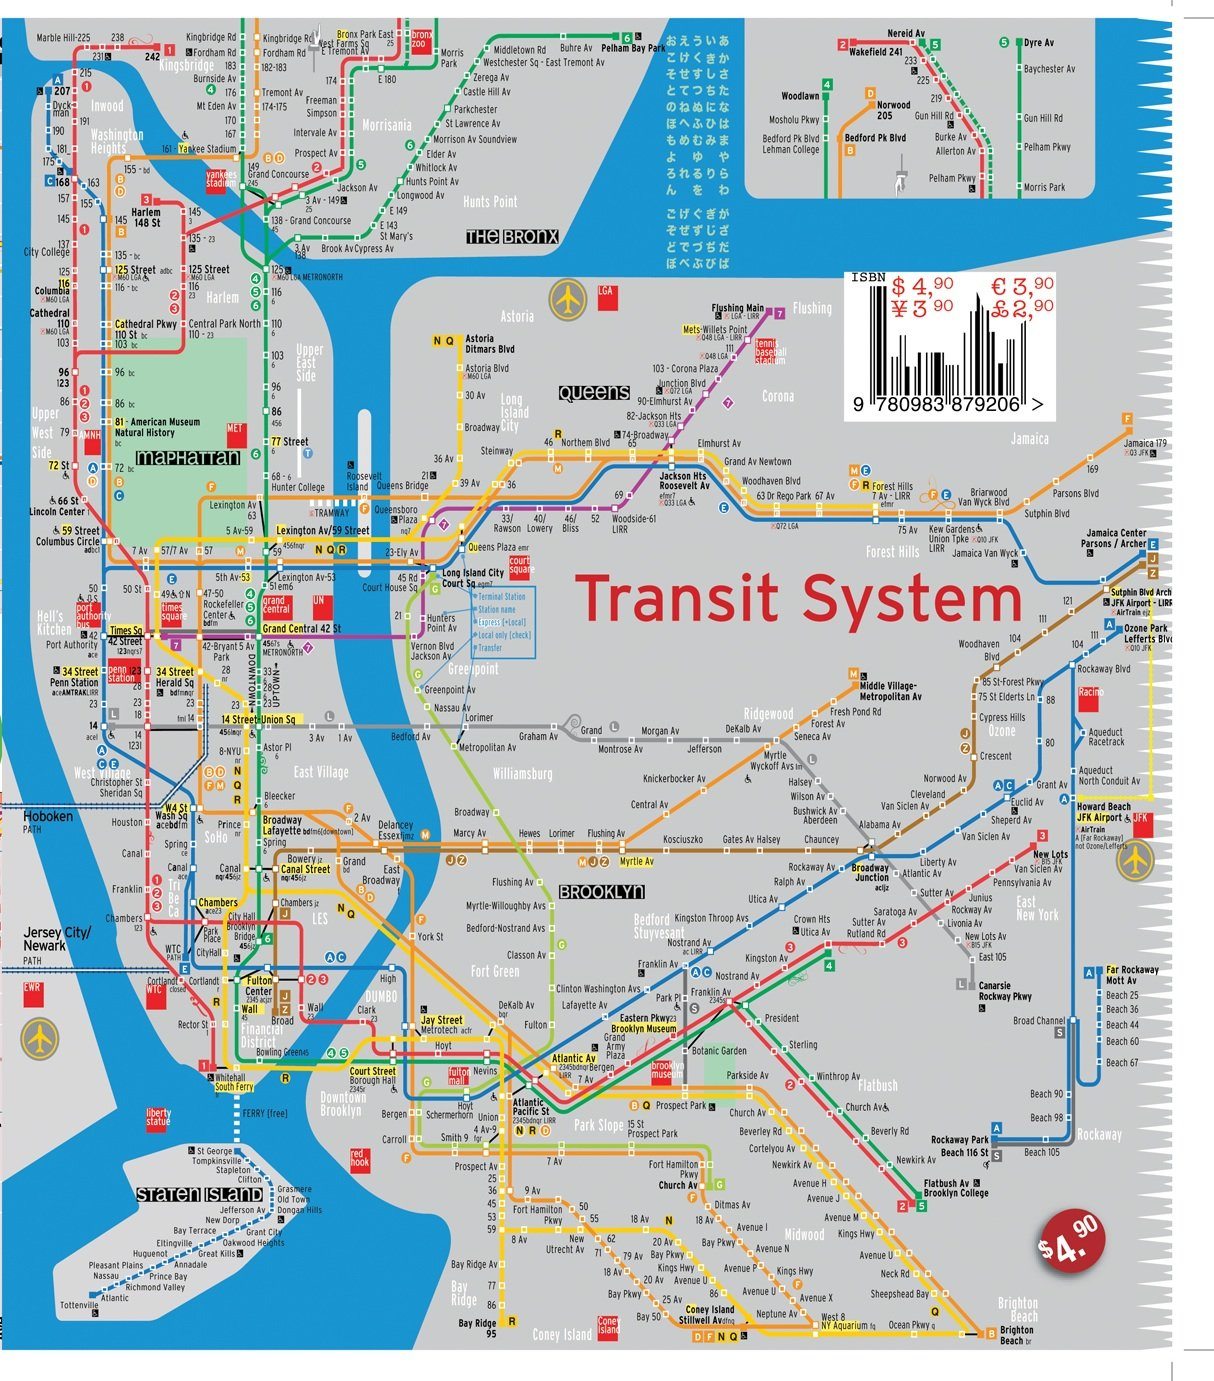 Ny Street And Subway Map.Terramaps Nyc Manhattan Street And Subway Map Waterproof Pocket